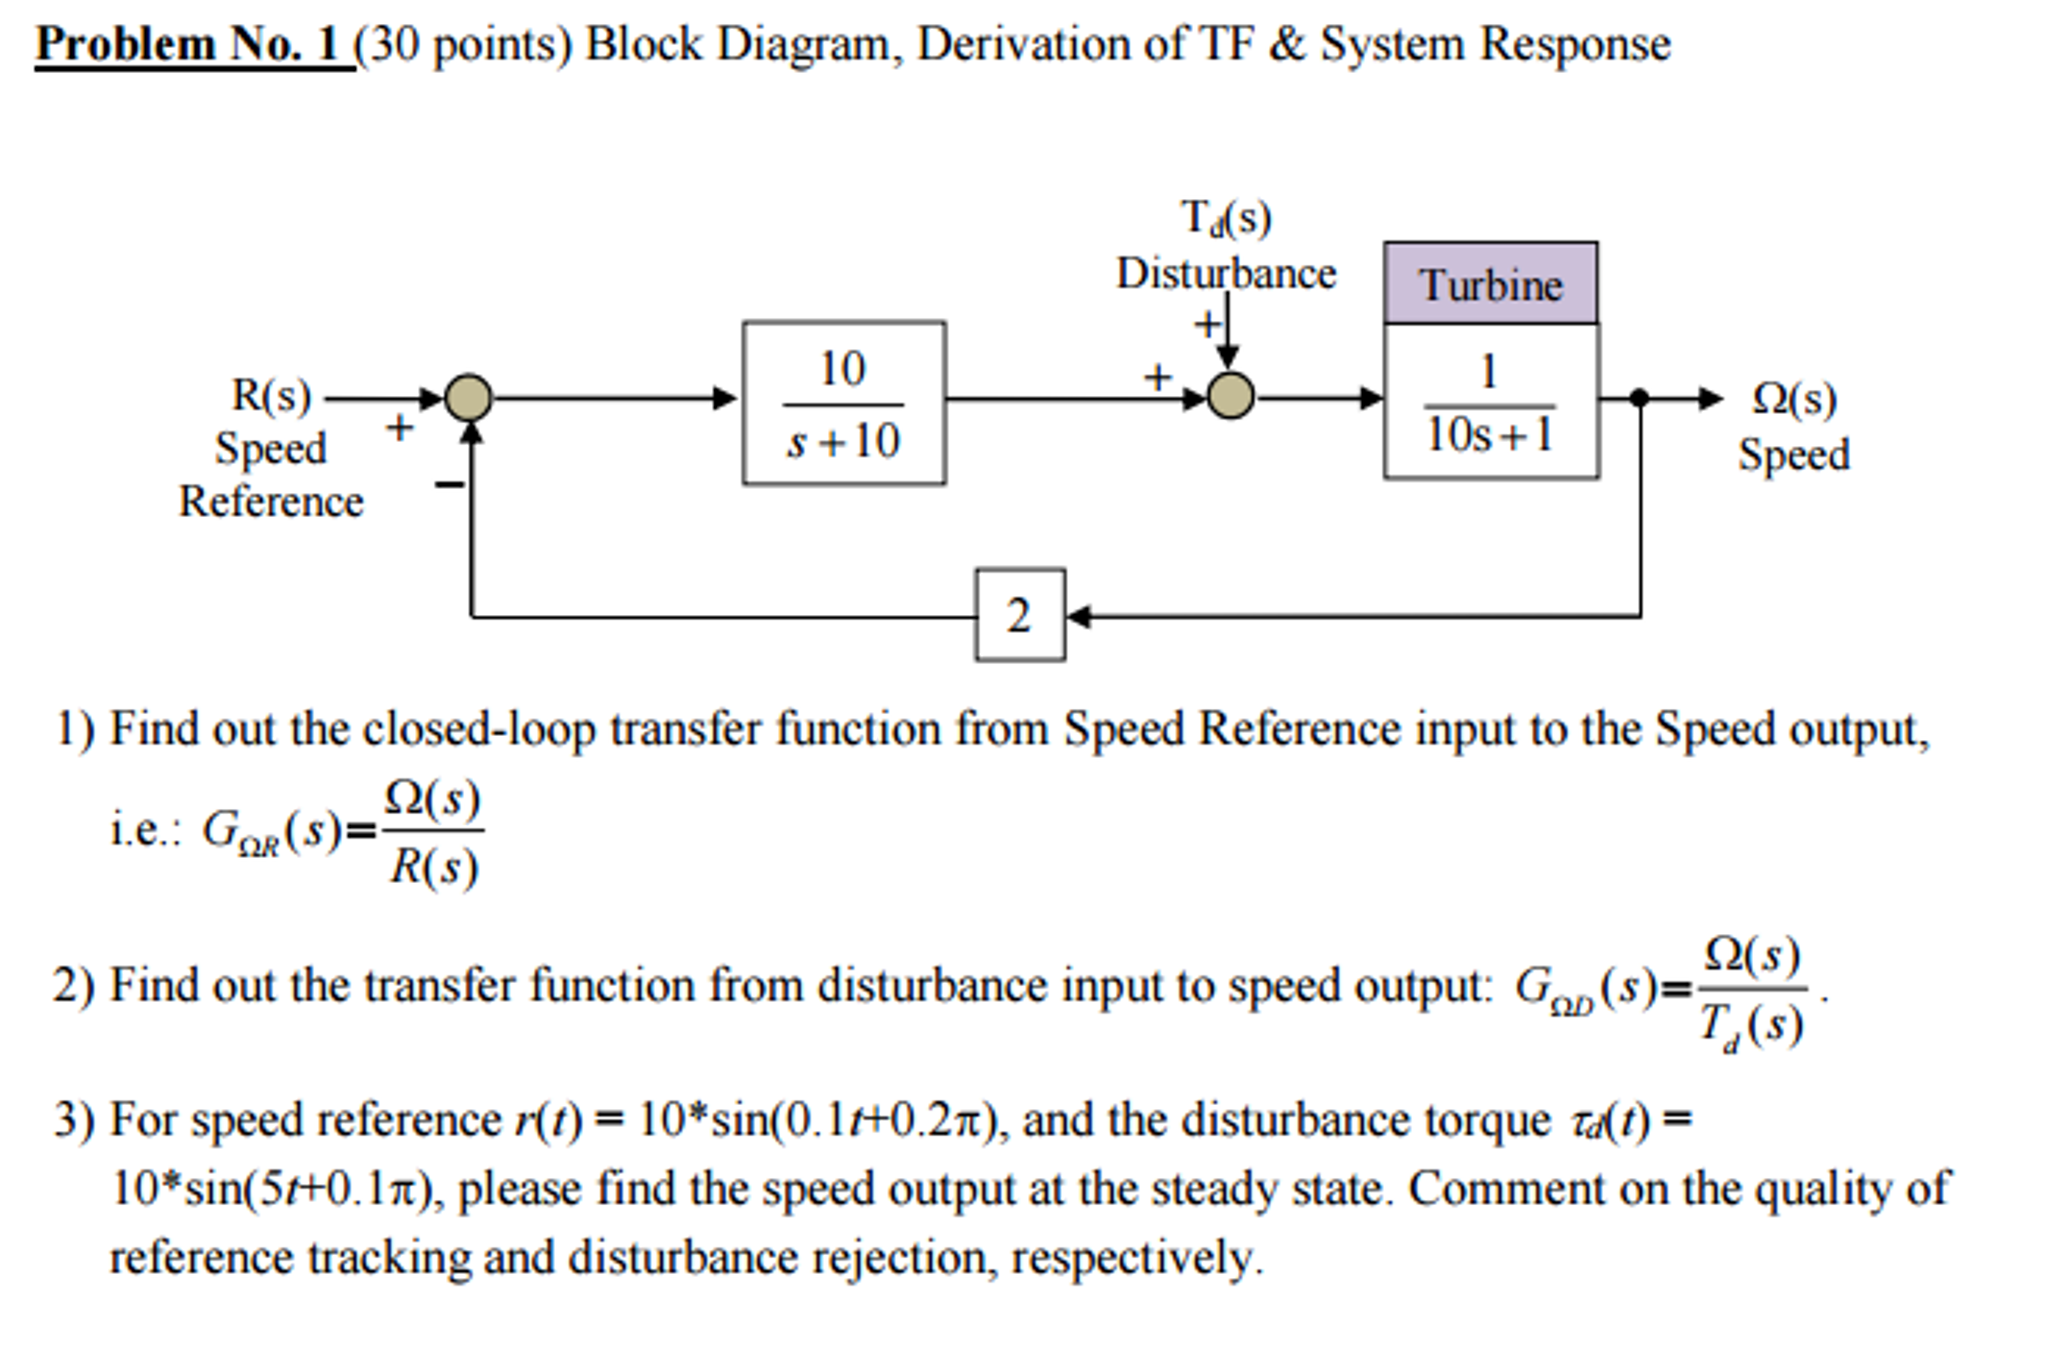 Block Diagram, Derivation of TF & System Response